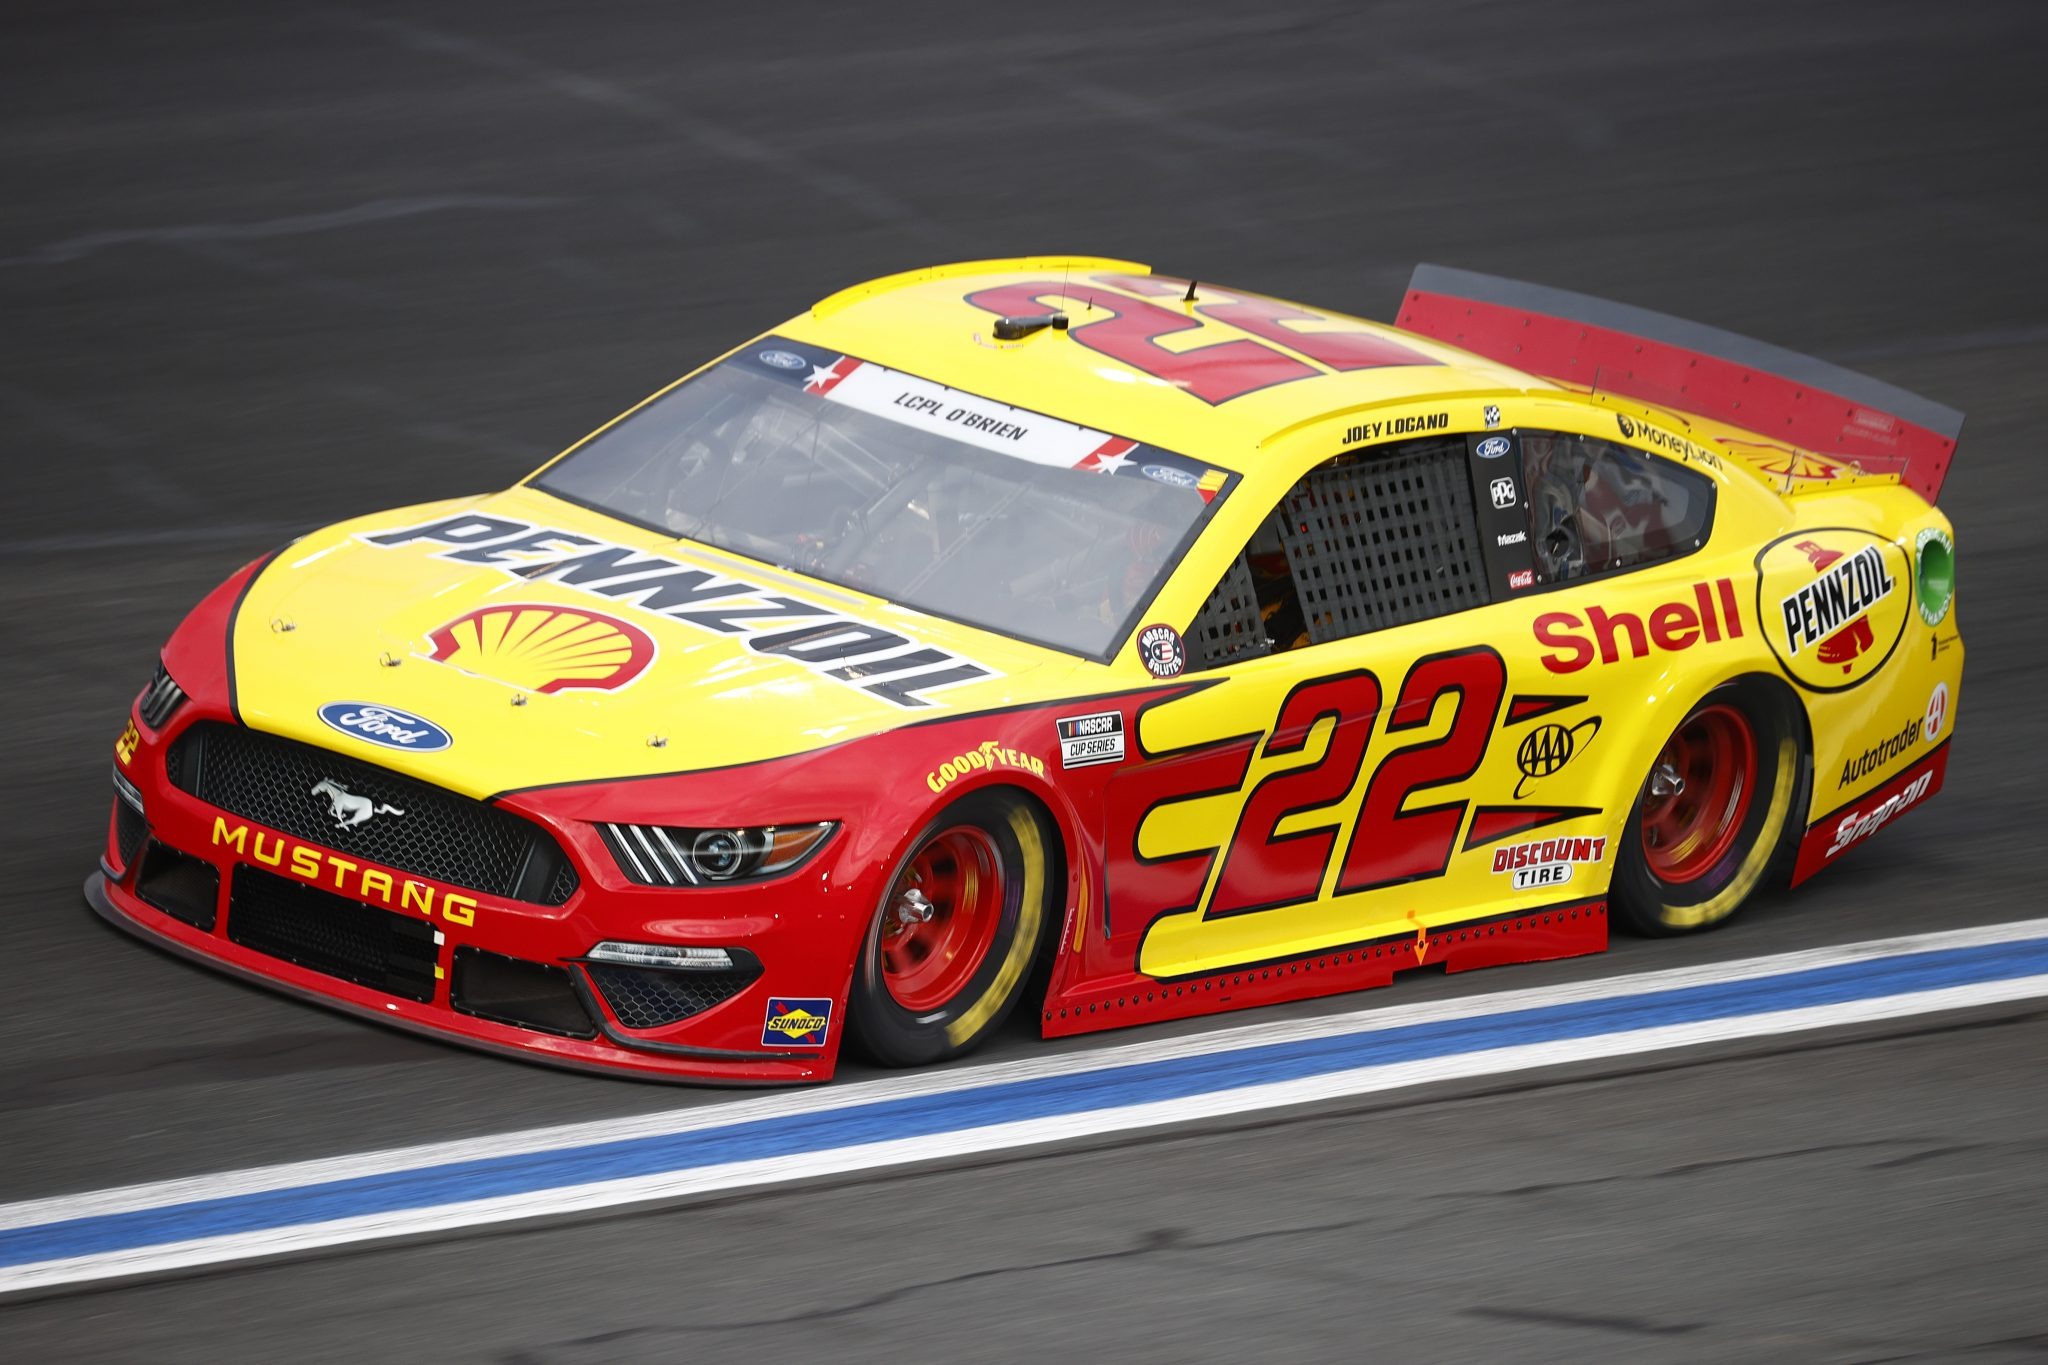 CONCORD, NORTH CAROLINA - MAY 28: Joey Logano, driver of the #22 Shell Pennzoil Ford, drives during practice for the NASCAR Cup Series Coca-Cola 600 at Charlotte Motor Speedway on May 28, 2021 in Concord, North Carolina. (Photo by Jared C. Tilton/Getty Images) | Getty Images